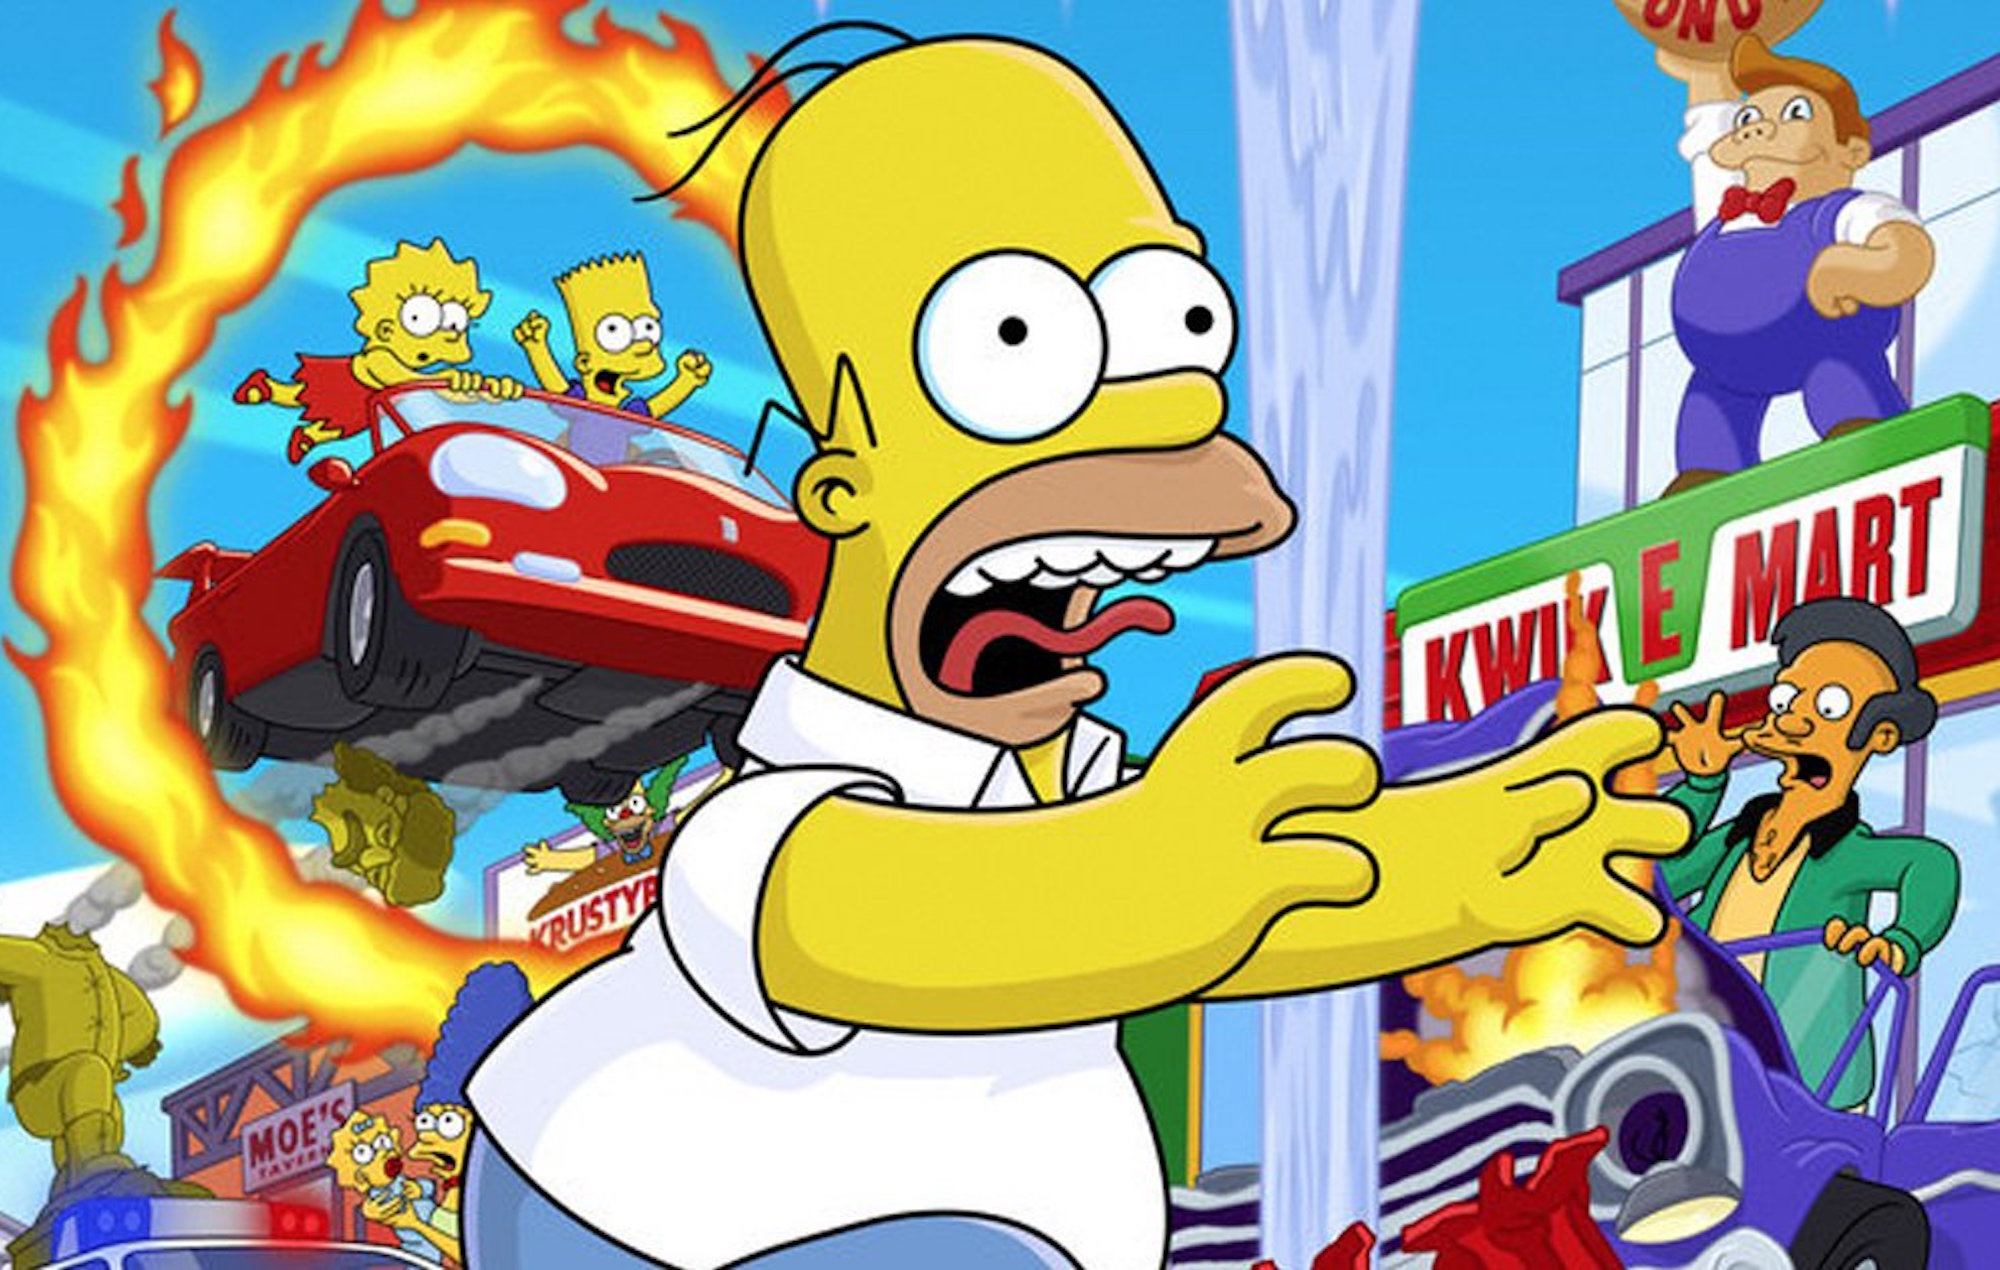 'The Simpsons: Hit & Run' producer hints that the game could be remastered